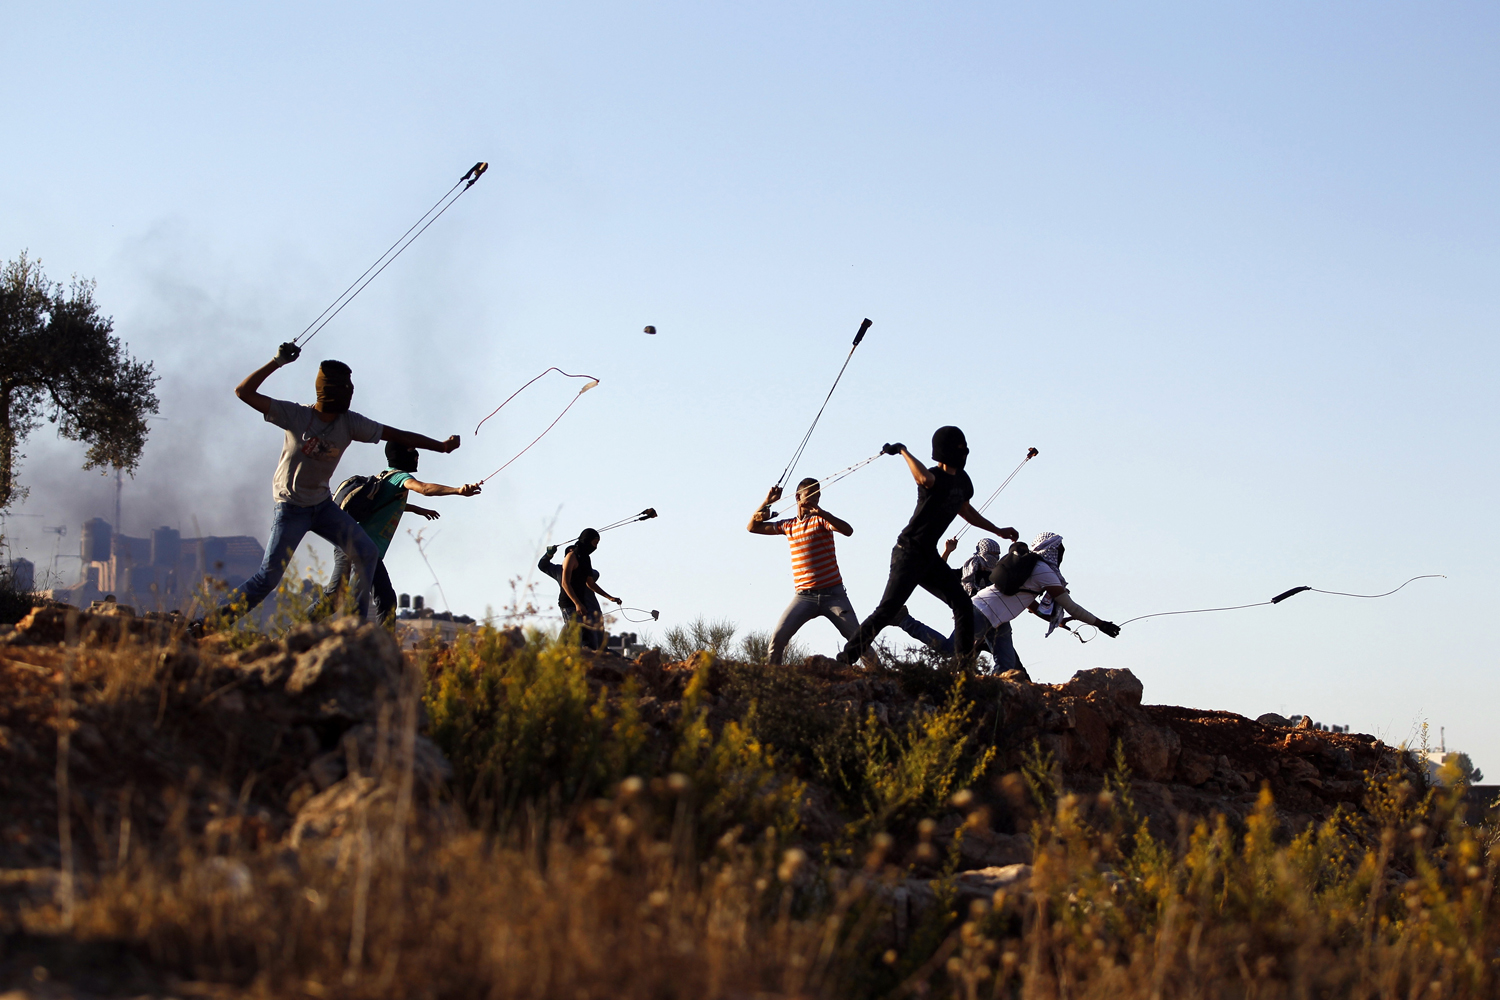 Oct. 11, 2013. Palestinian protesters hurl rocks at Israeli soldiers during clashes in Betunia, near the West Bank city of Ramallah.